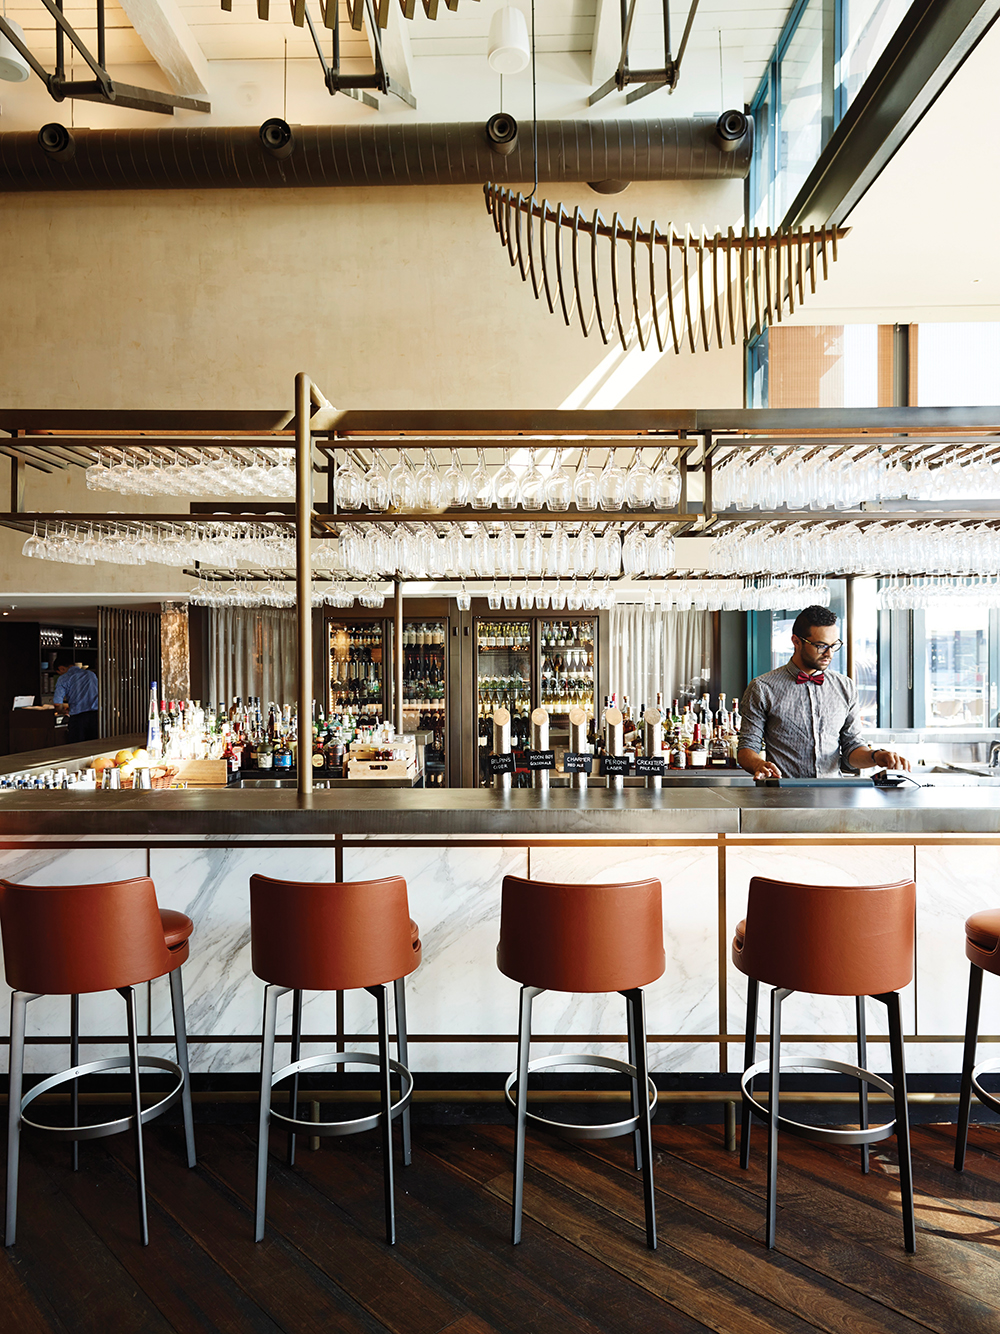 Pier one hotel sydney hospitality interiors magazine for Industrial hotel design